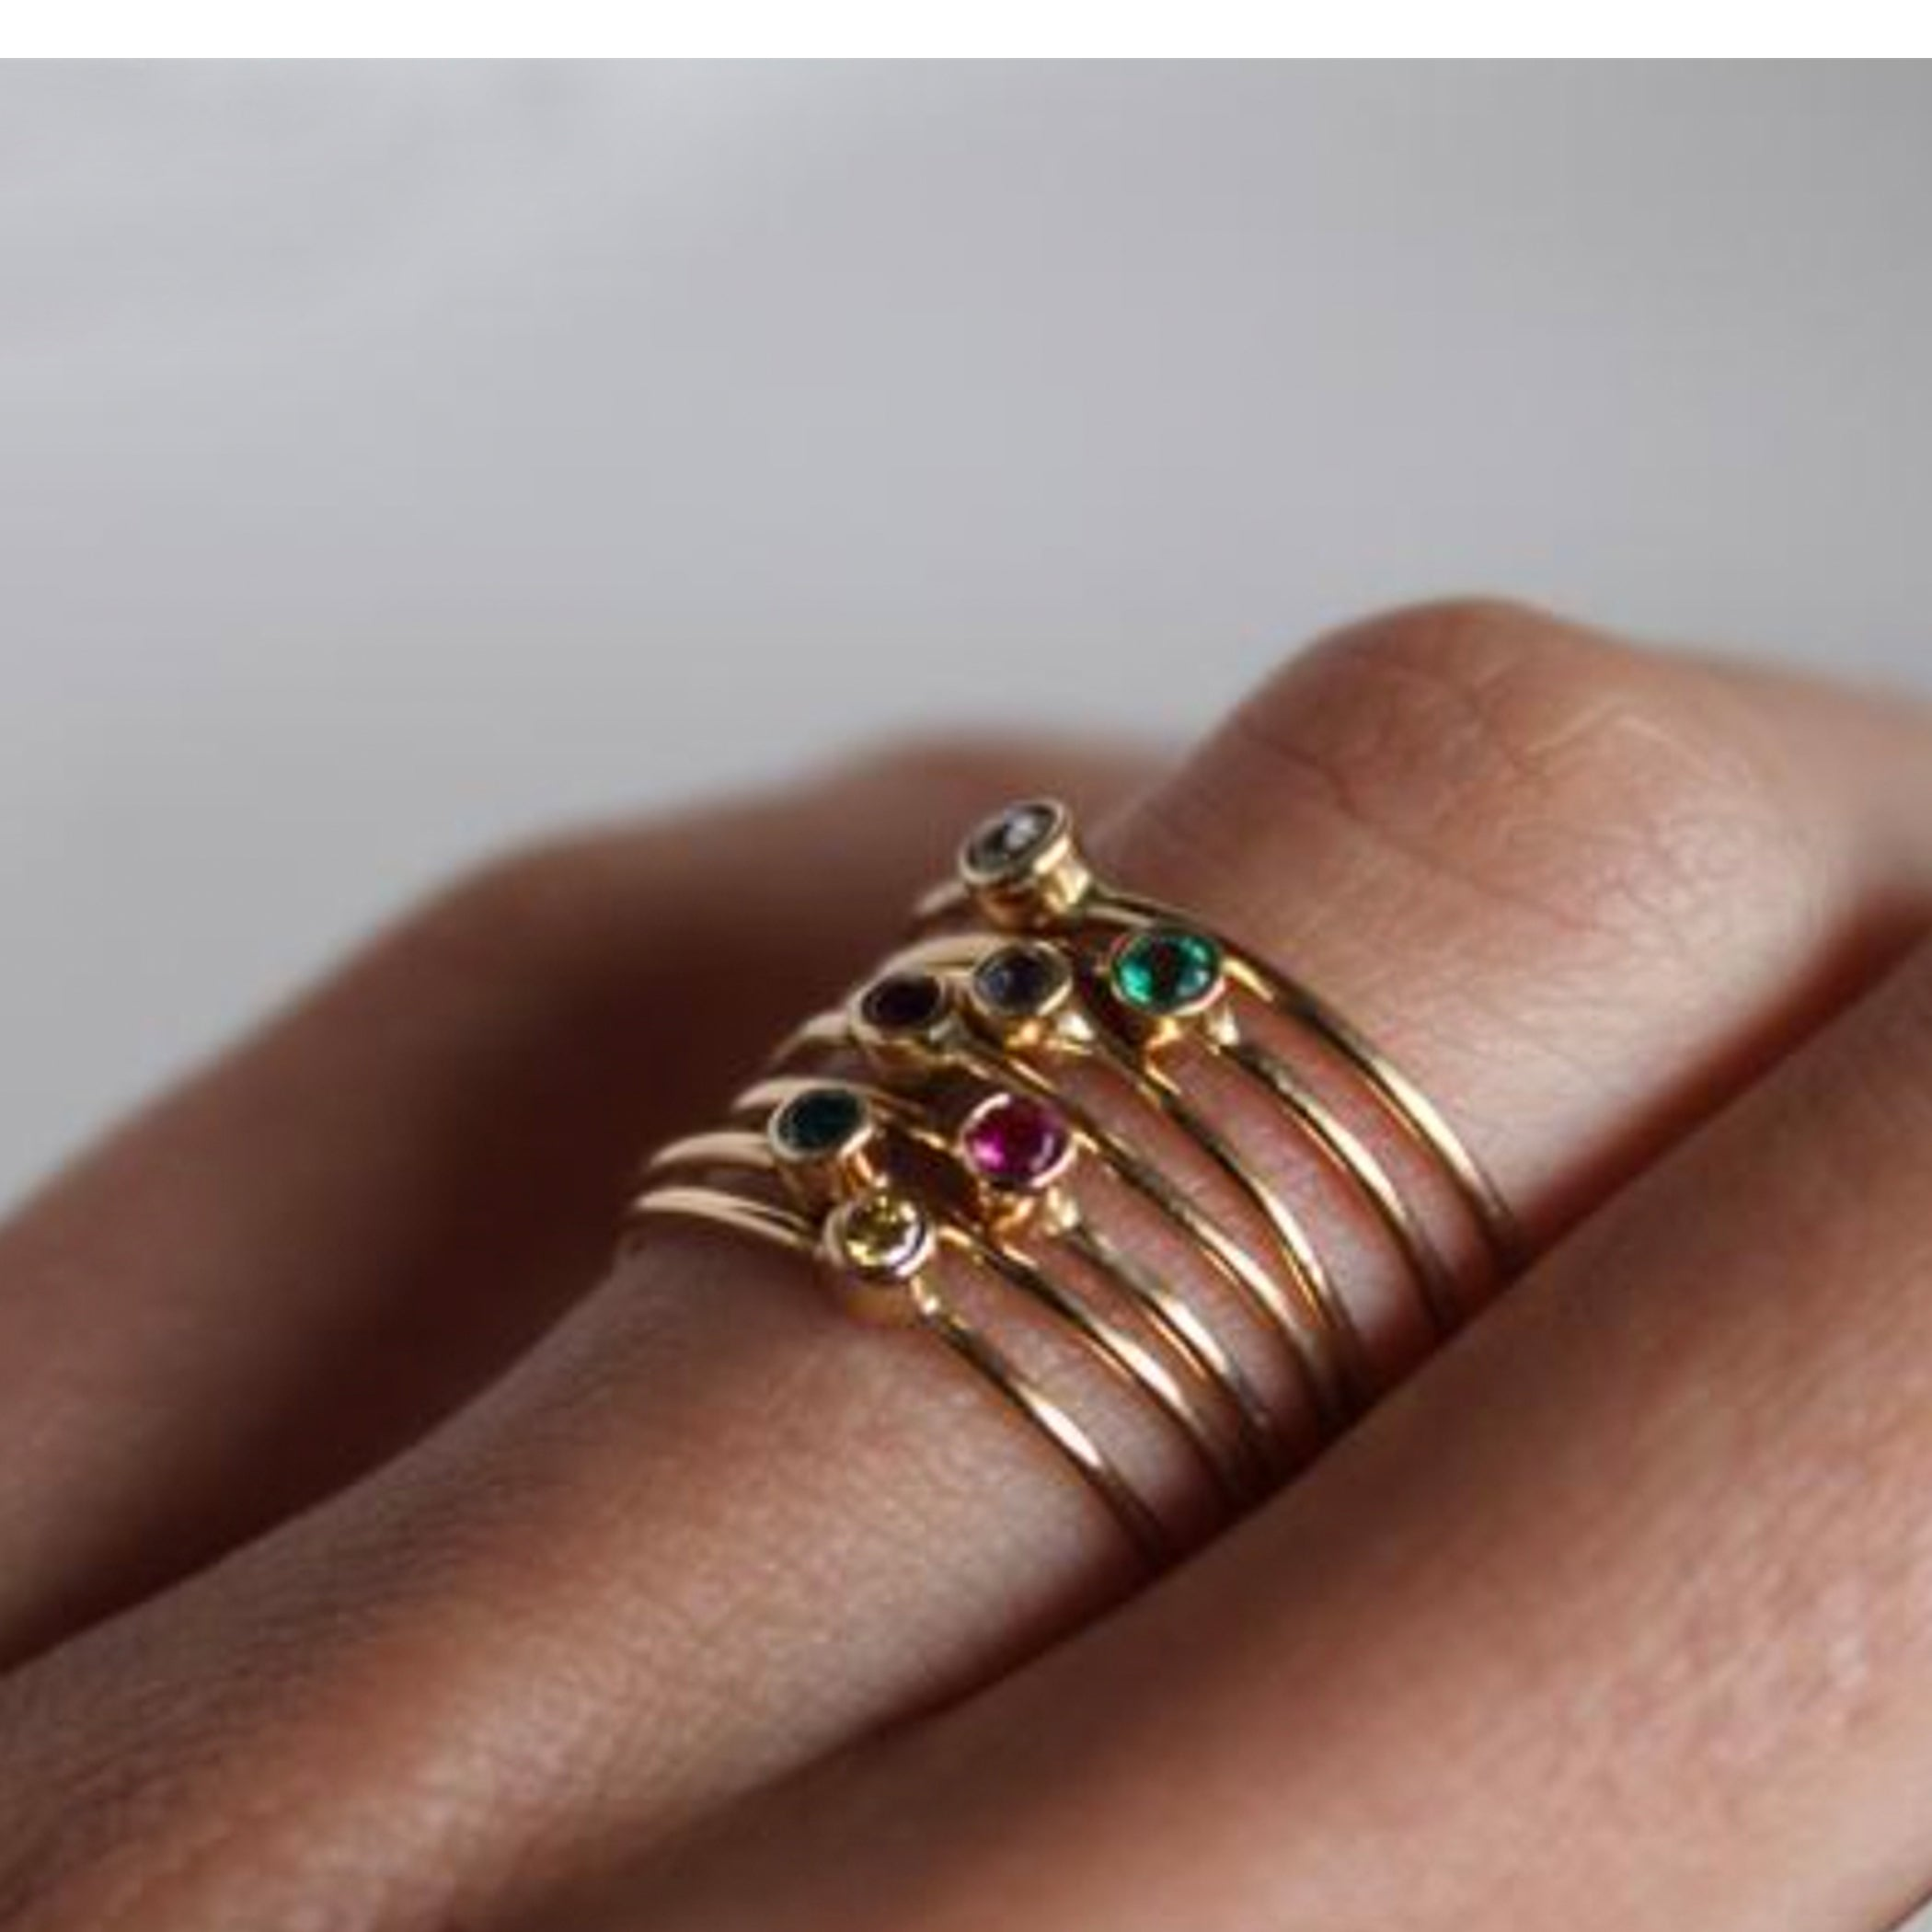 lumo wb emerald emeral rings chocolate single ring cognac diamond products model